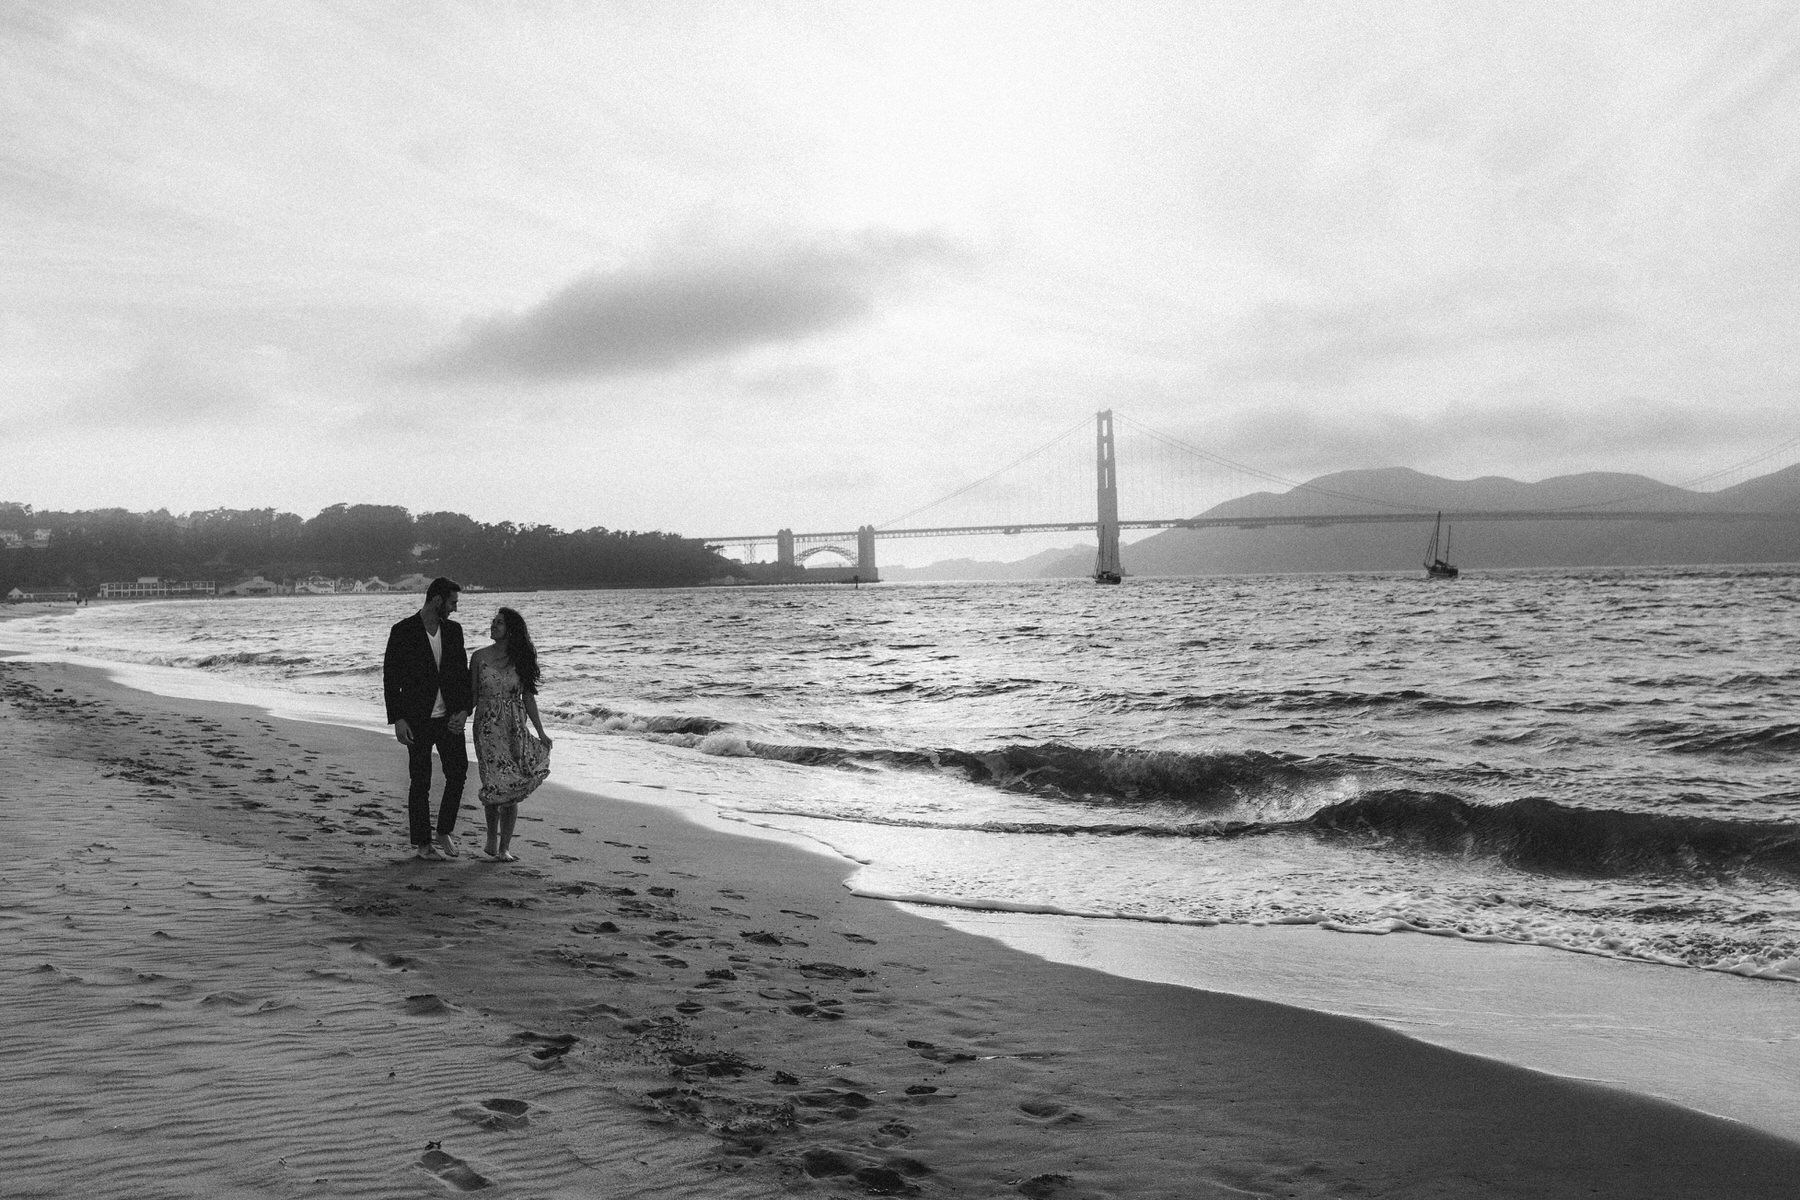 Engagement picture at Crissy Field beach with couple embracing romatically on the beach with Golden Gate bridge in the background as the sun is setting.